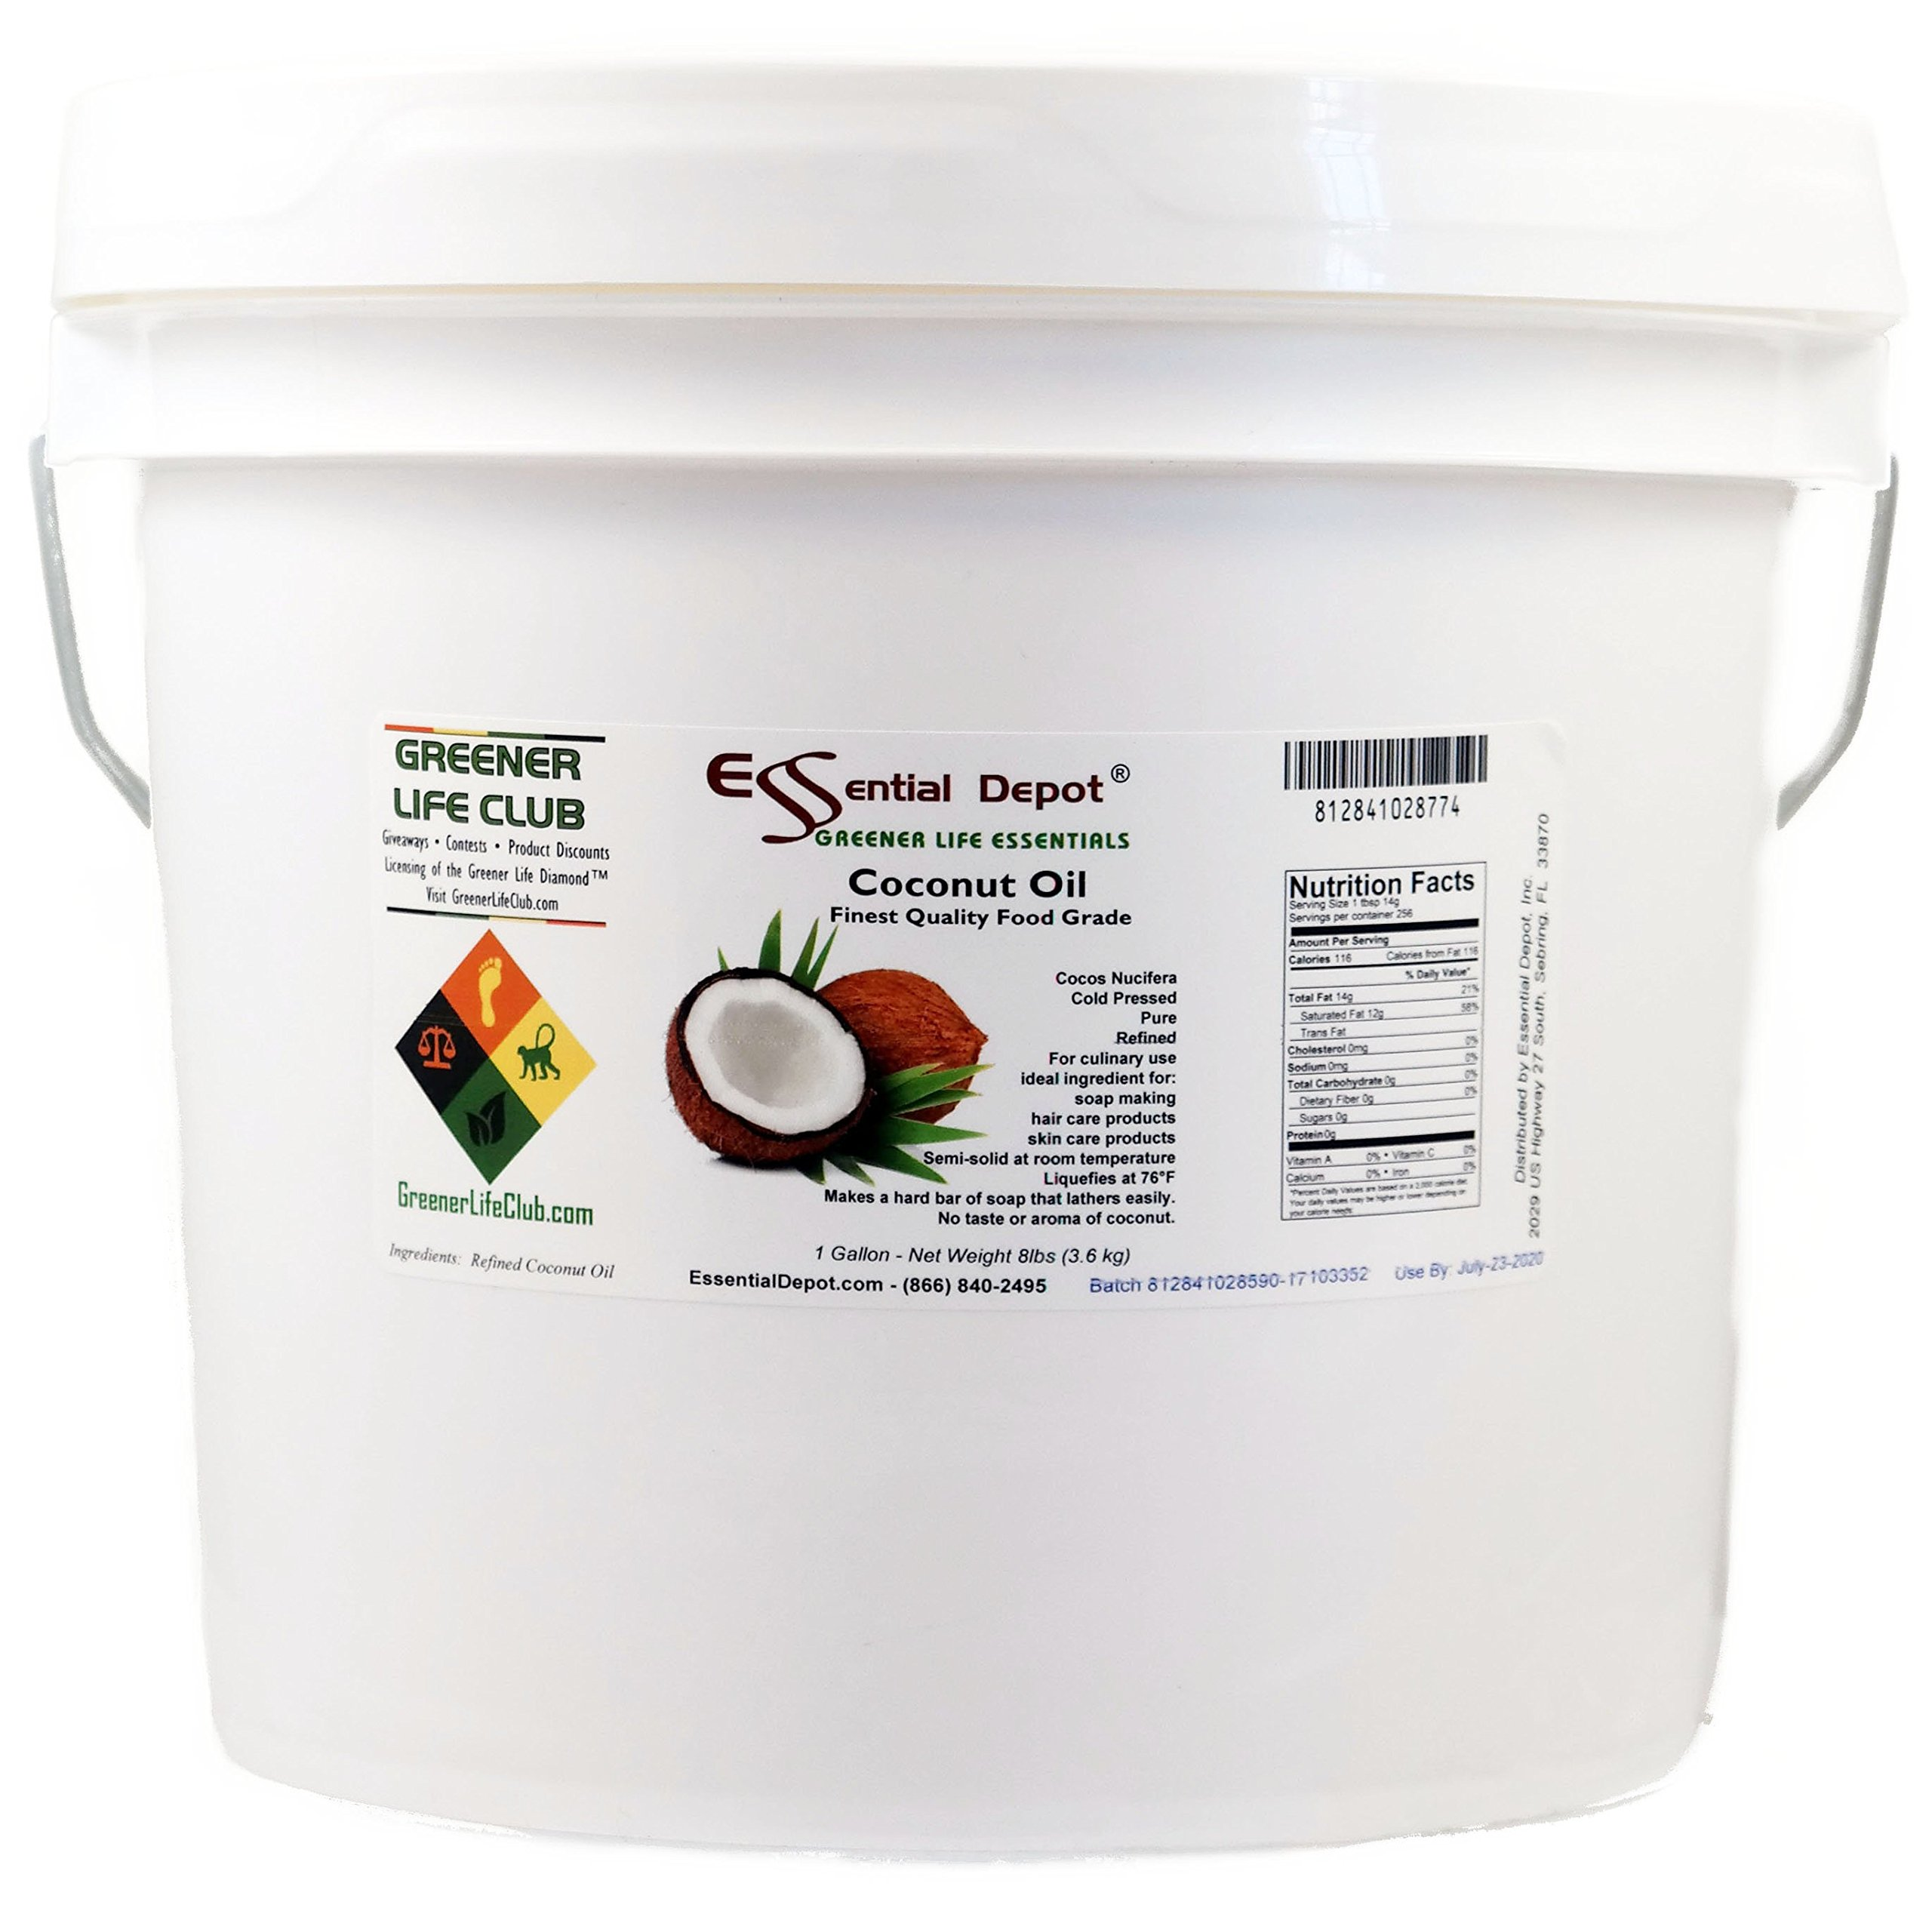 ESSENTIAL DEPOT Coconut Oil - Finest Quality Food Grade - 8 lbs - In Pail - 1 Gallon